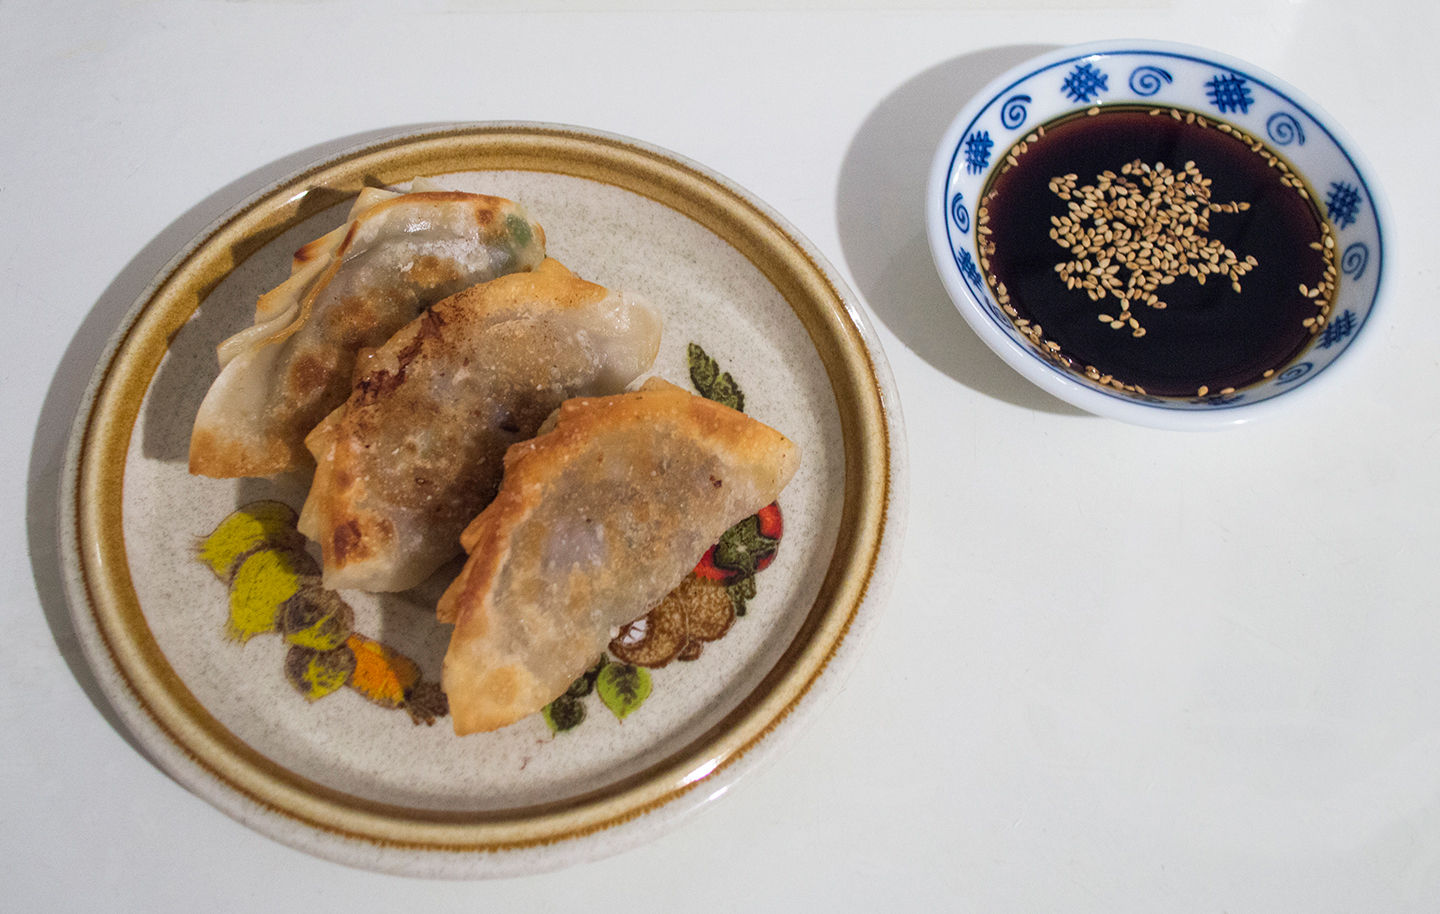 Fried Beef Dumplings with Sauce